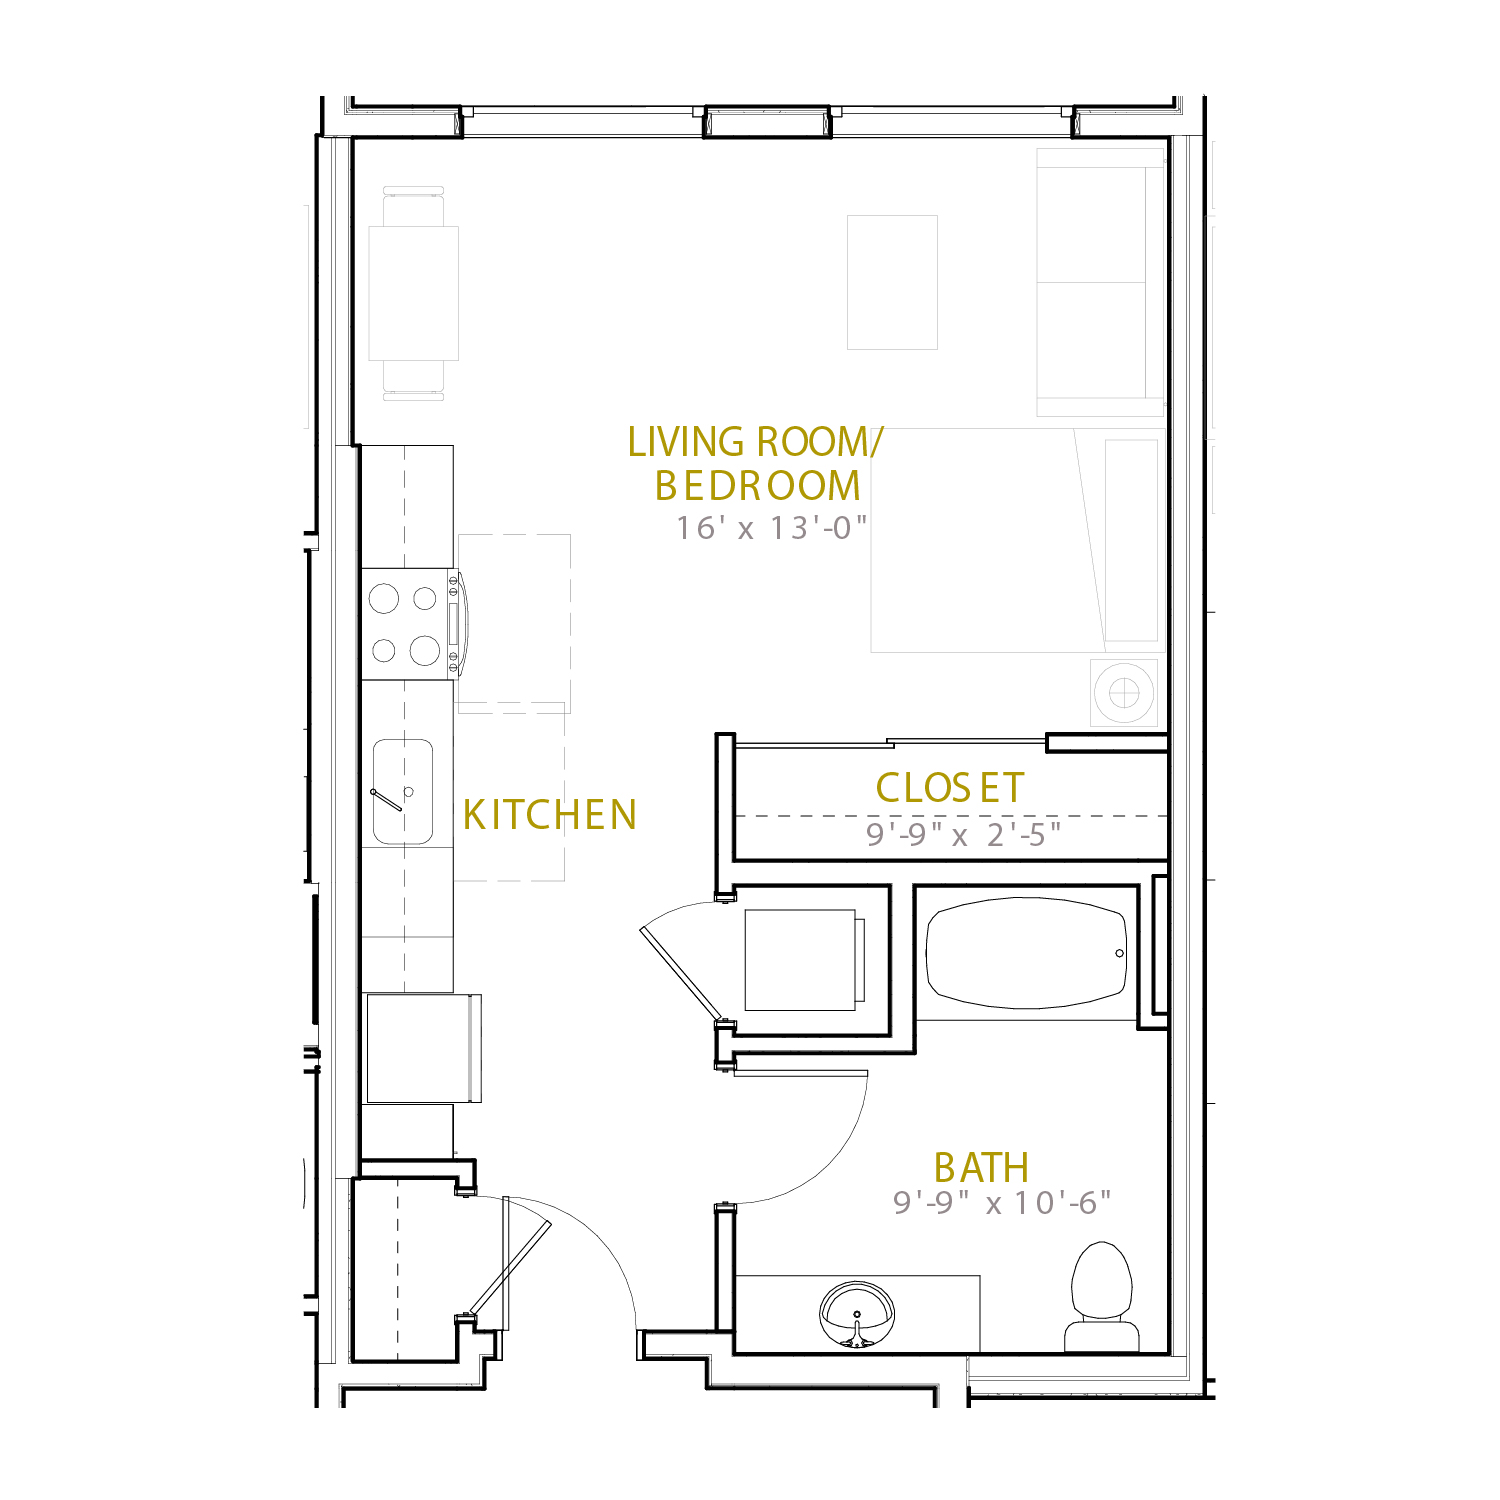 A Three A floor plan diagram. A studio apartment with one bathroom and an open kitchen and living space.